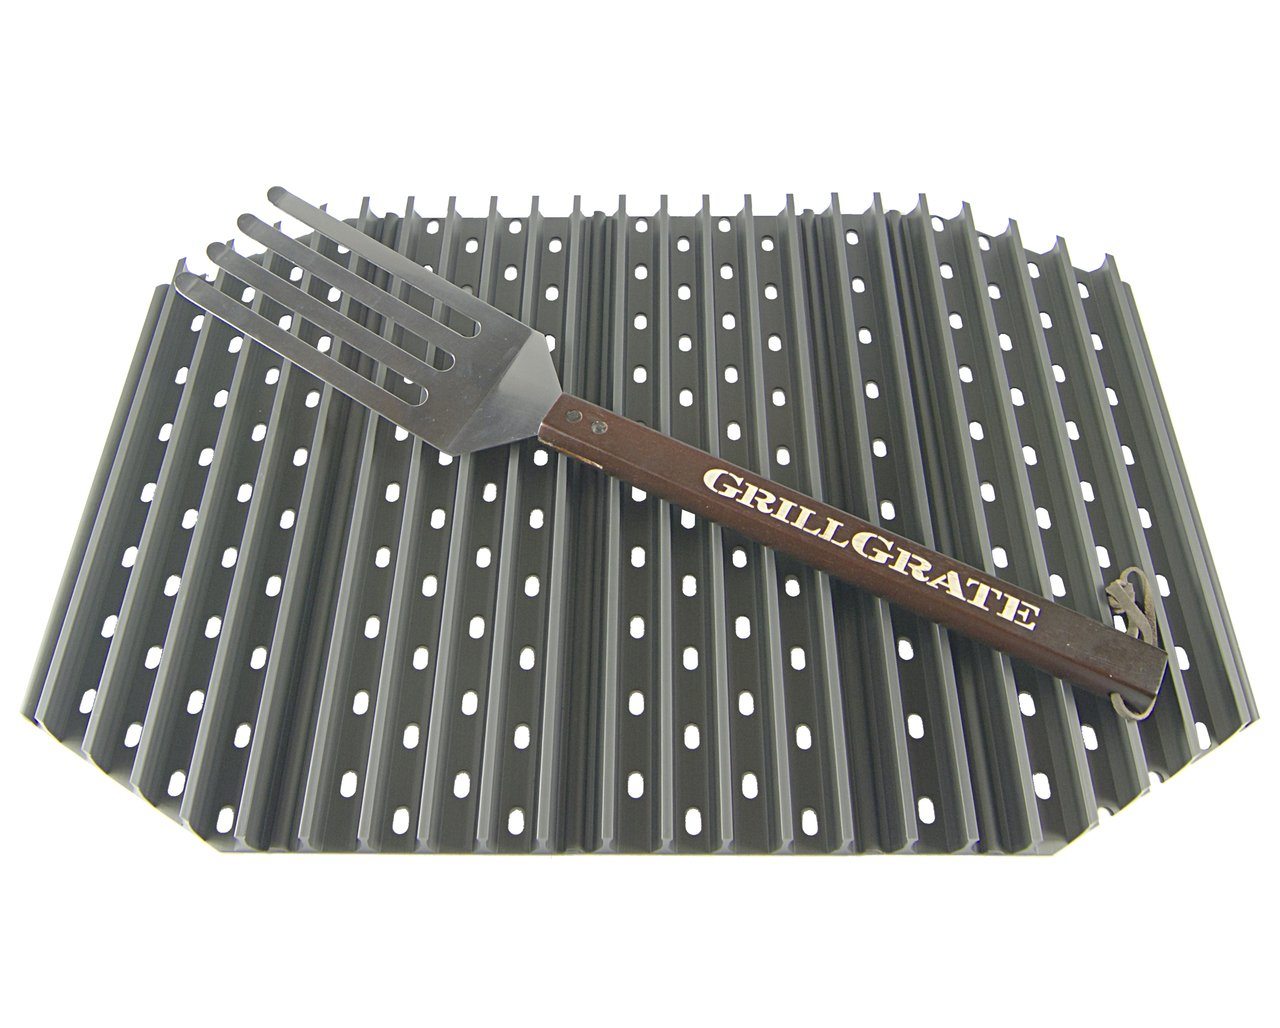 GrillGrate for The PK 360 Grill by GrillGrate